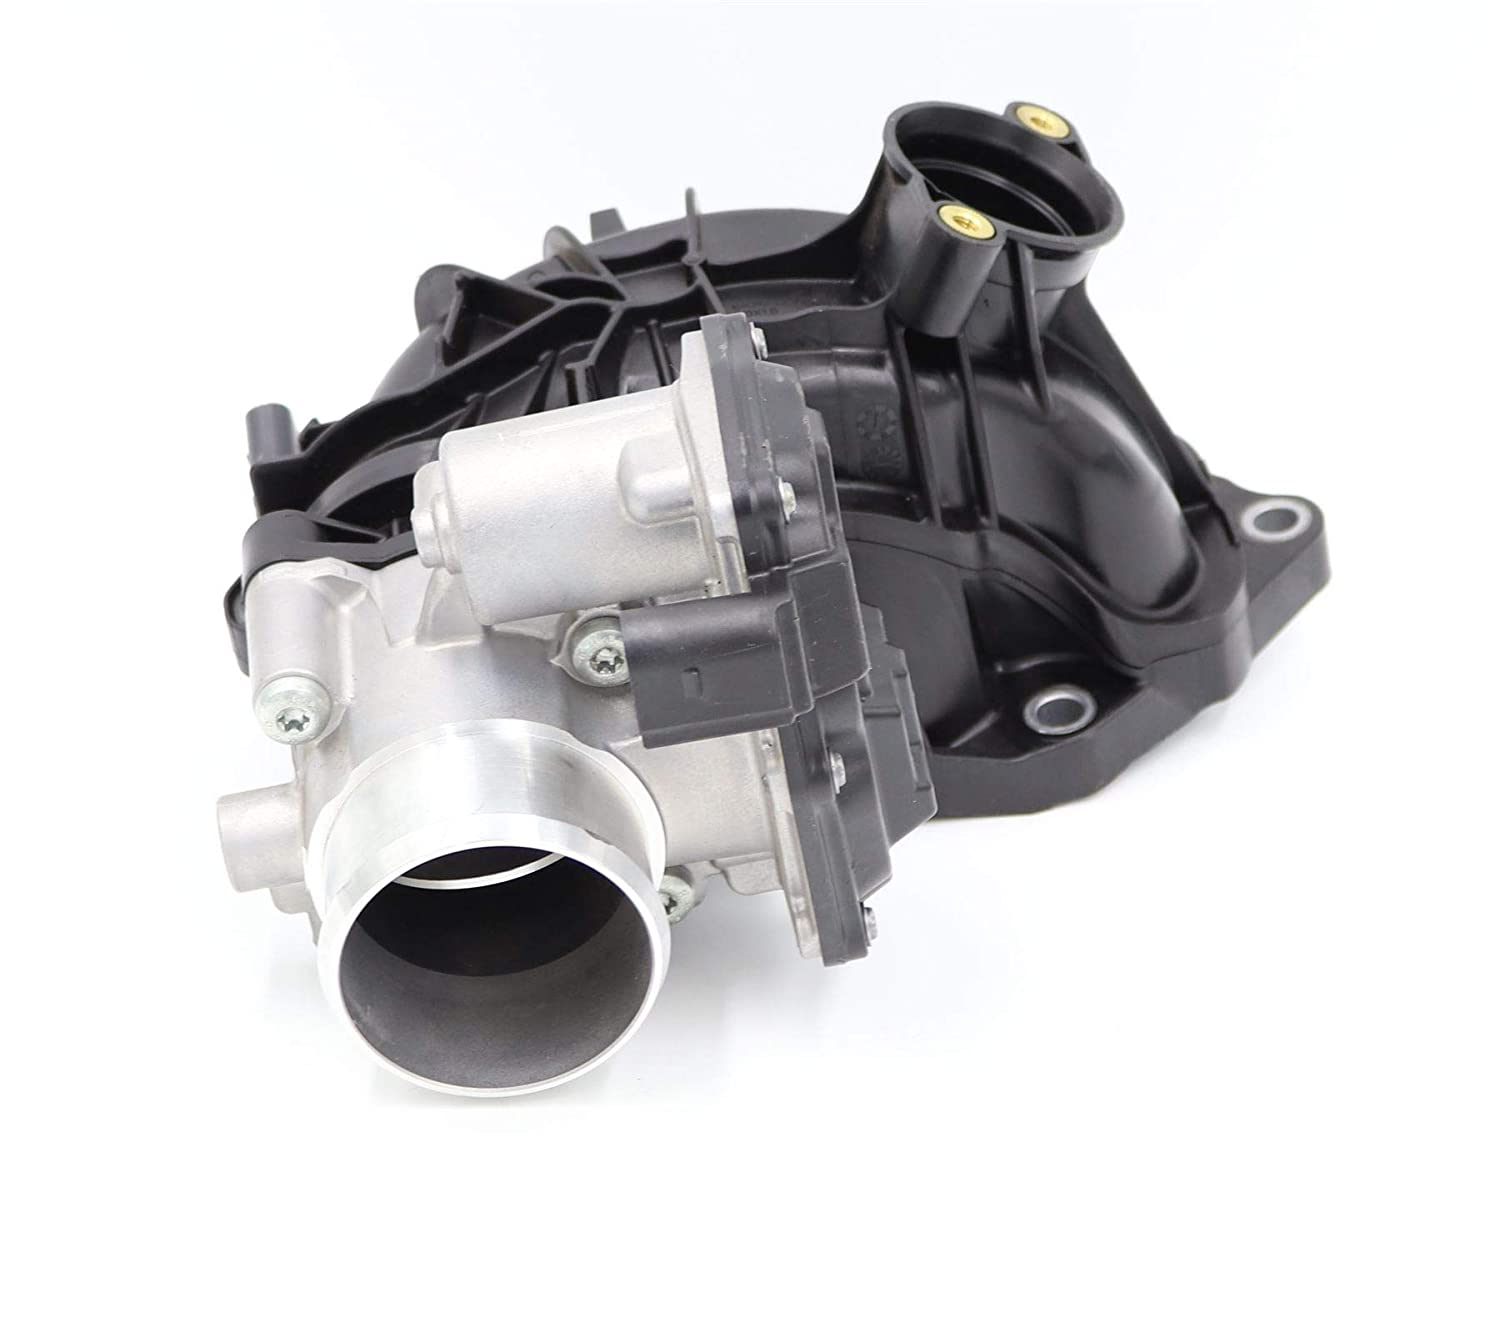 Transit Parts Transit MK8 2.0 TDCI Throttle Body With Thermostat Housing And Map Sensor